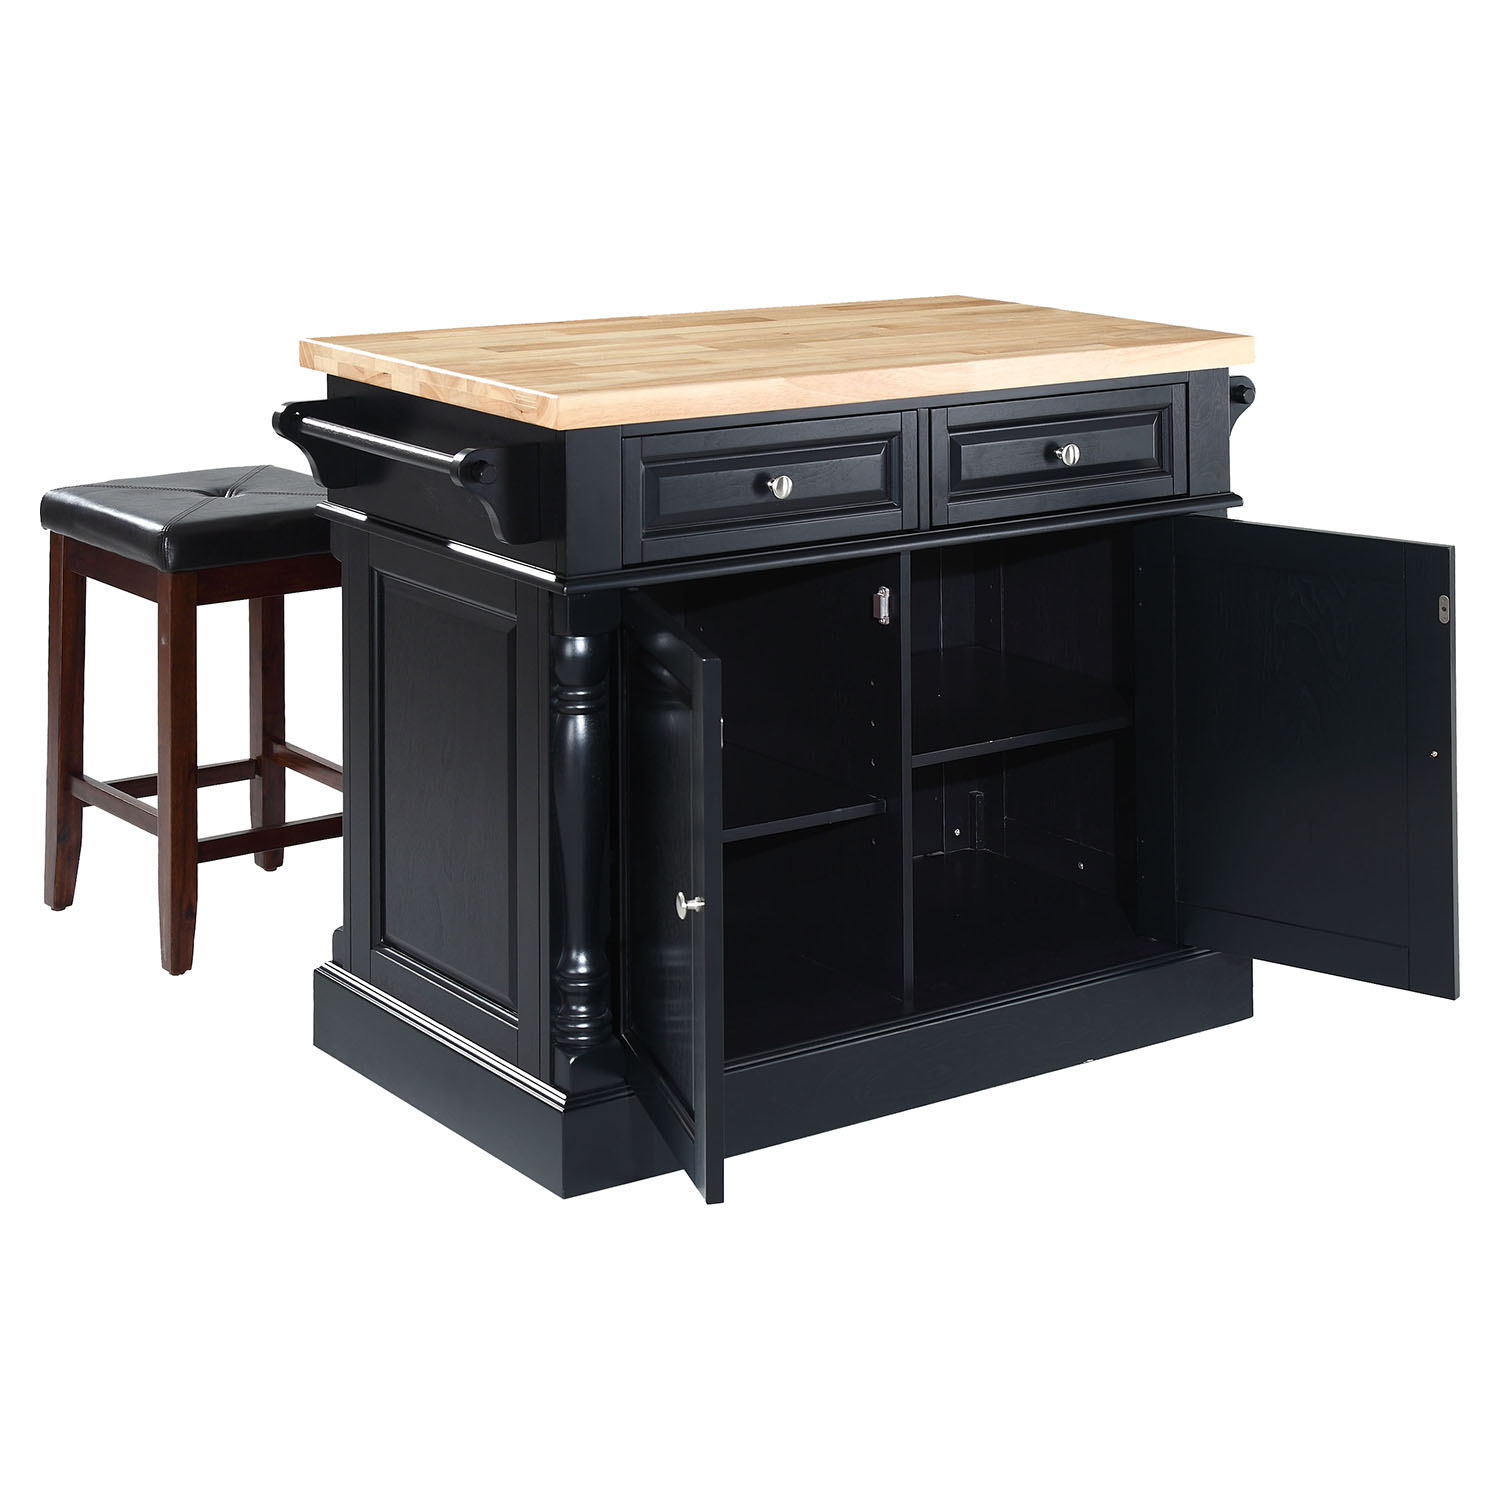 Block Top Kitchen Island with Square Seat Stools  Black  DCG Stores